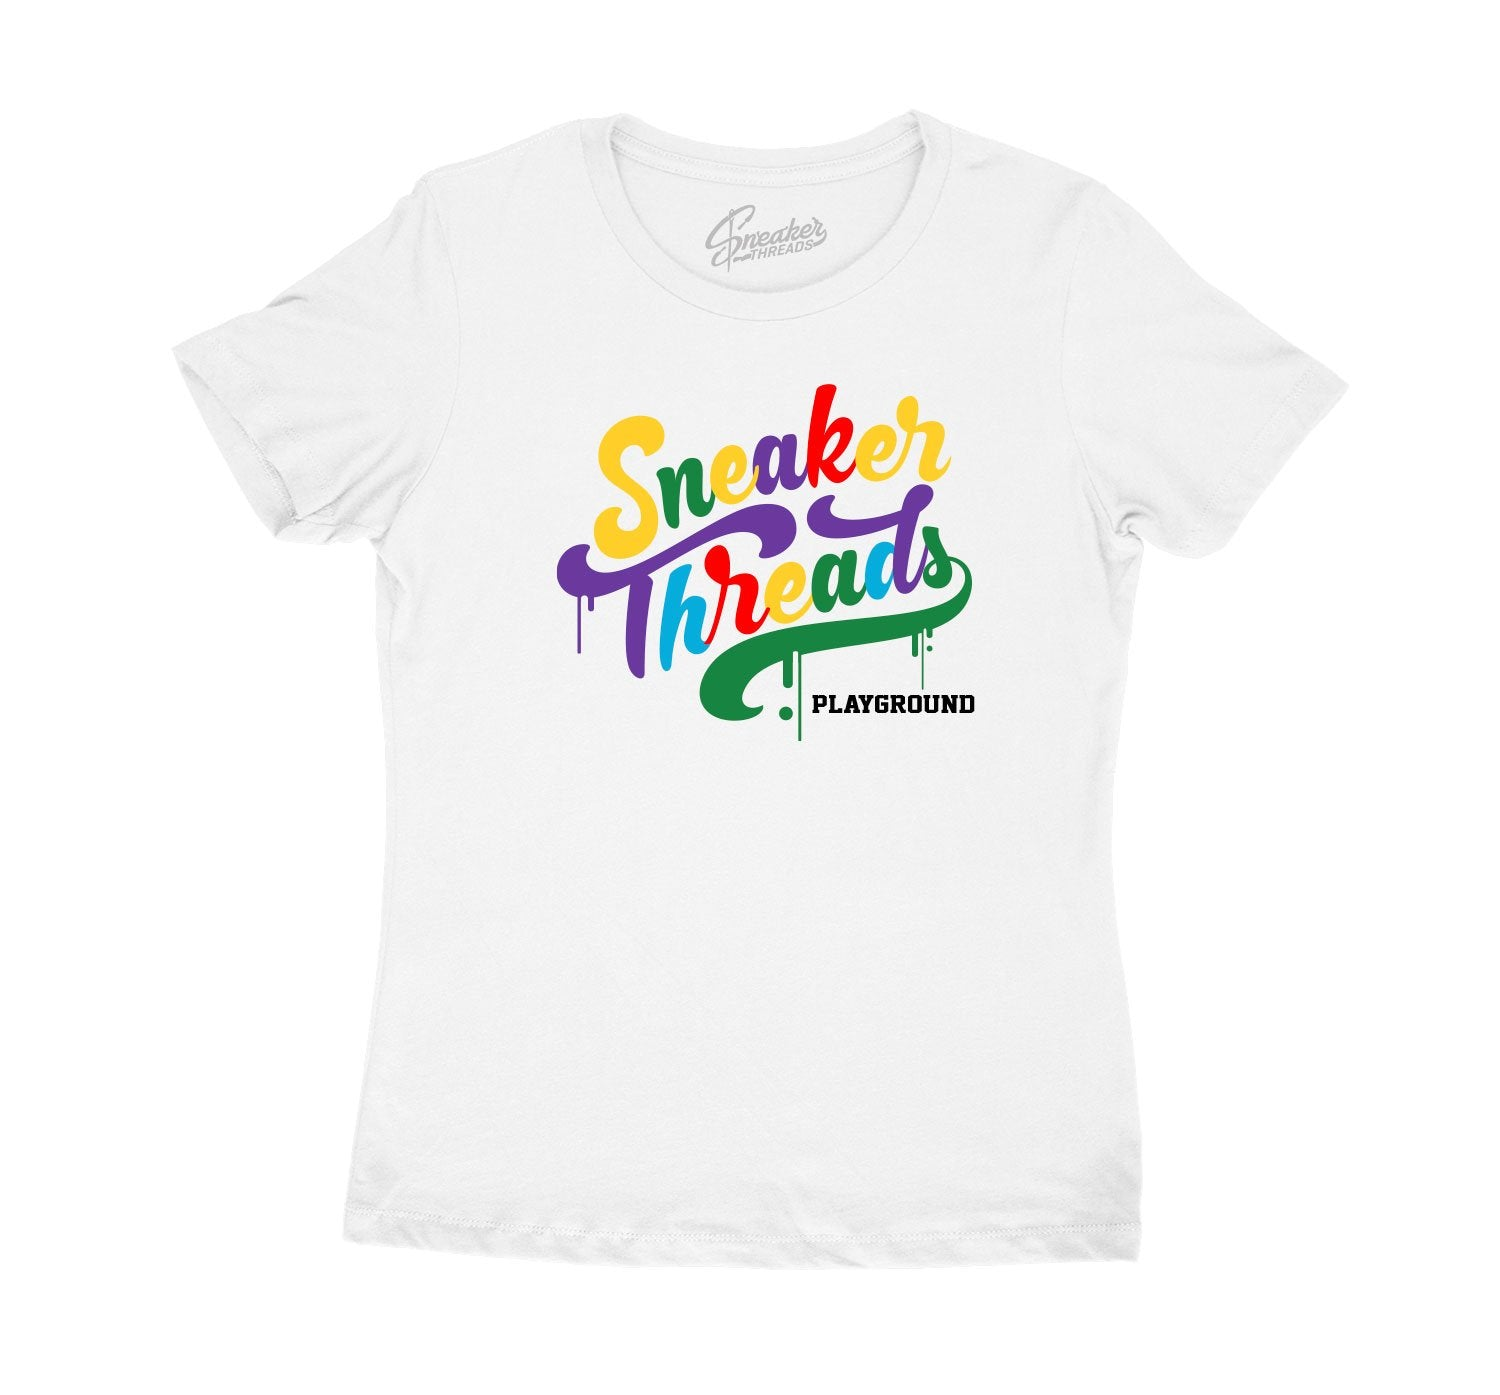 sneaker collection Jordan playground 13s matching womens tees